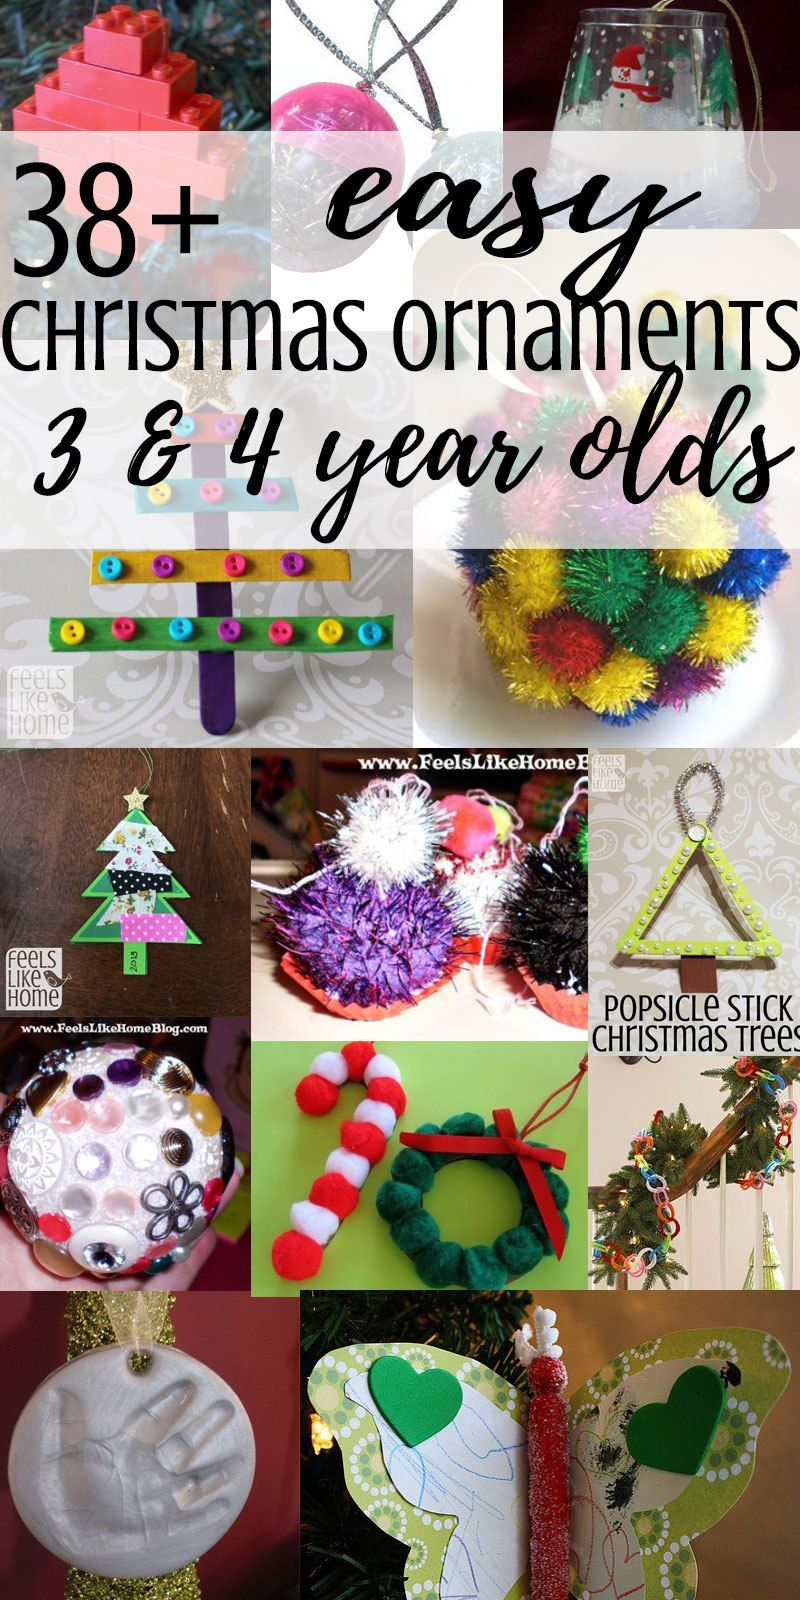 38+ easy DIY Christmas tree ornaments that 3 and 4 year